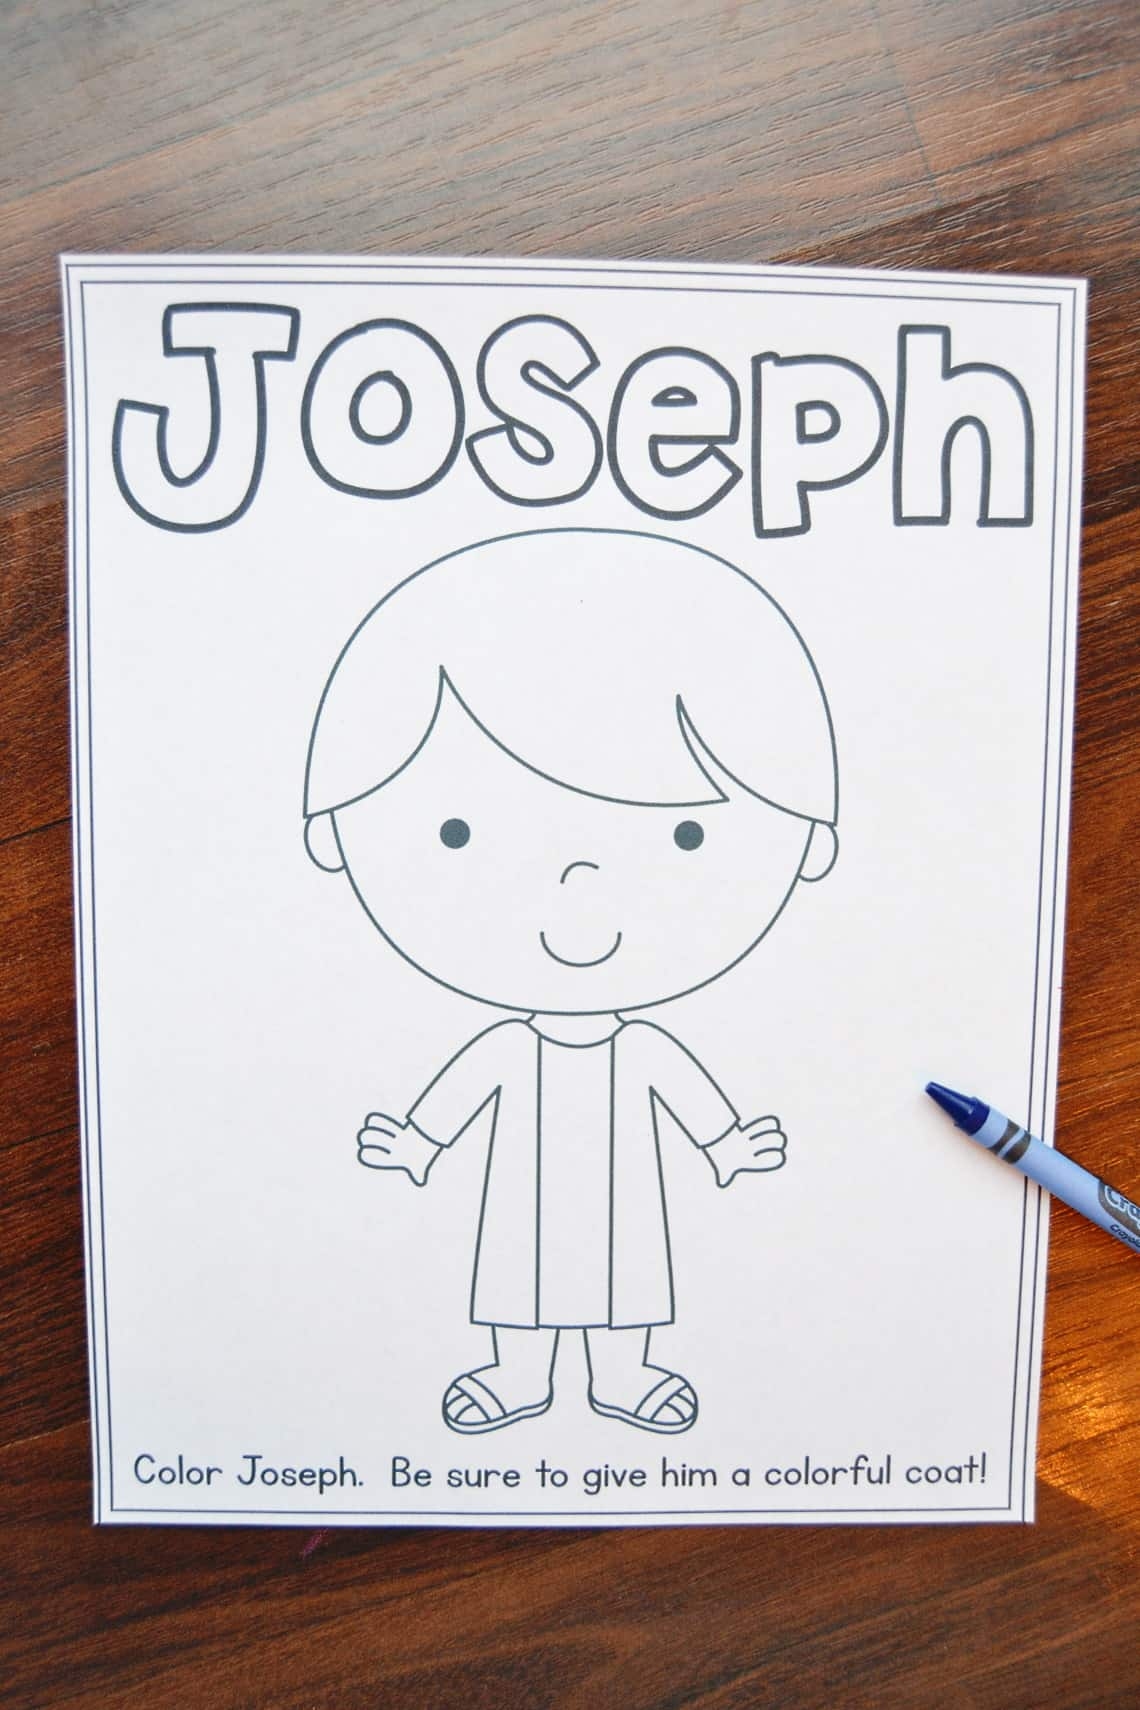 Joseph coloring page with crayons